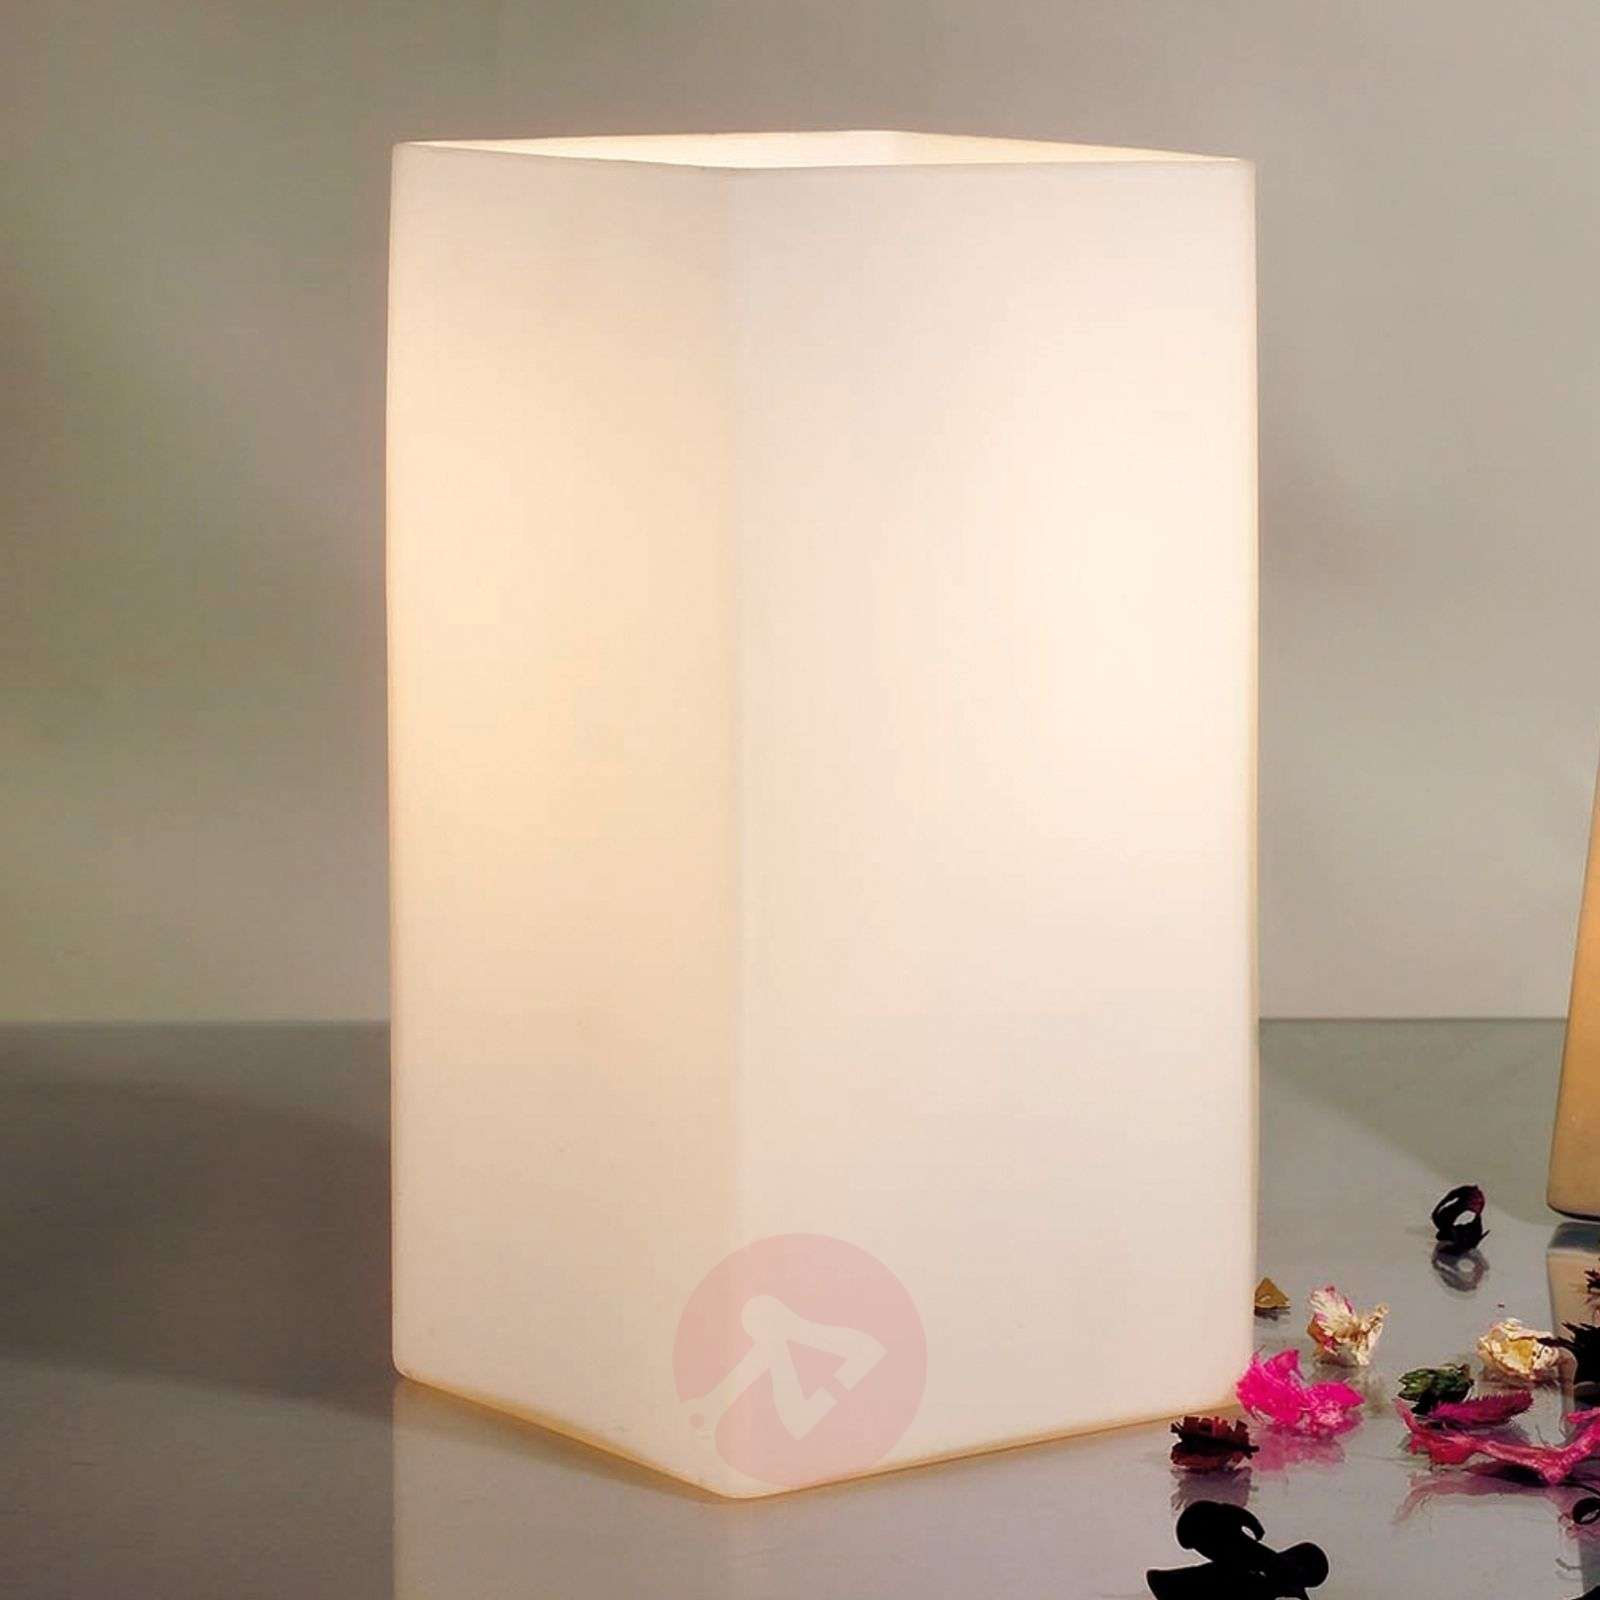 Square table lamp VILMA-7500214-01